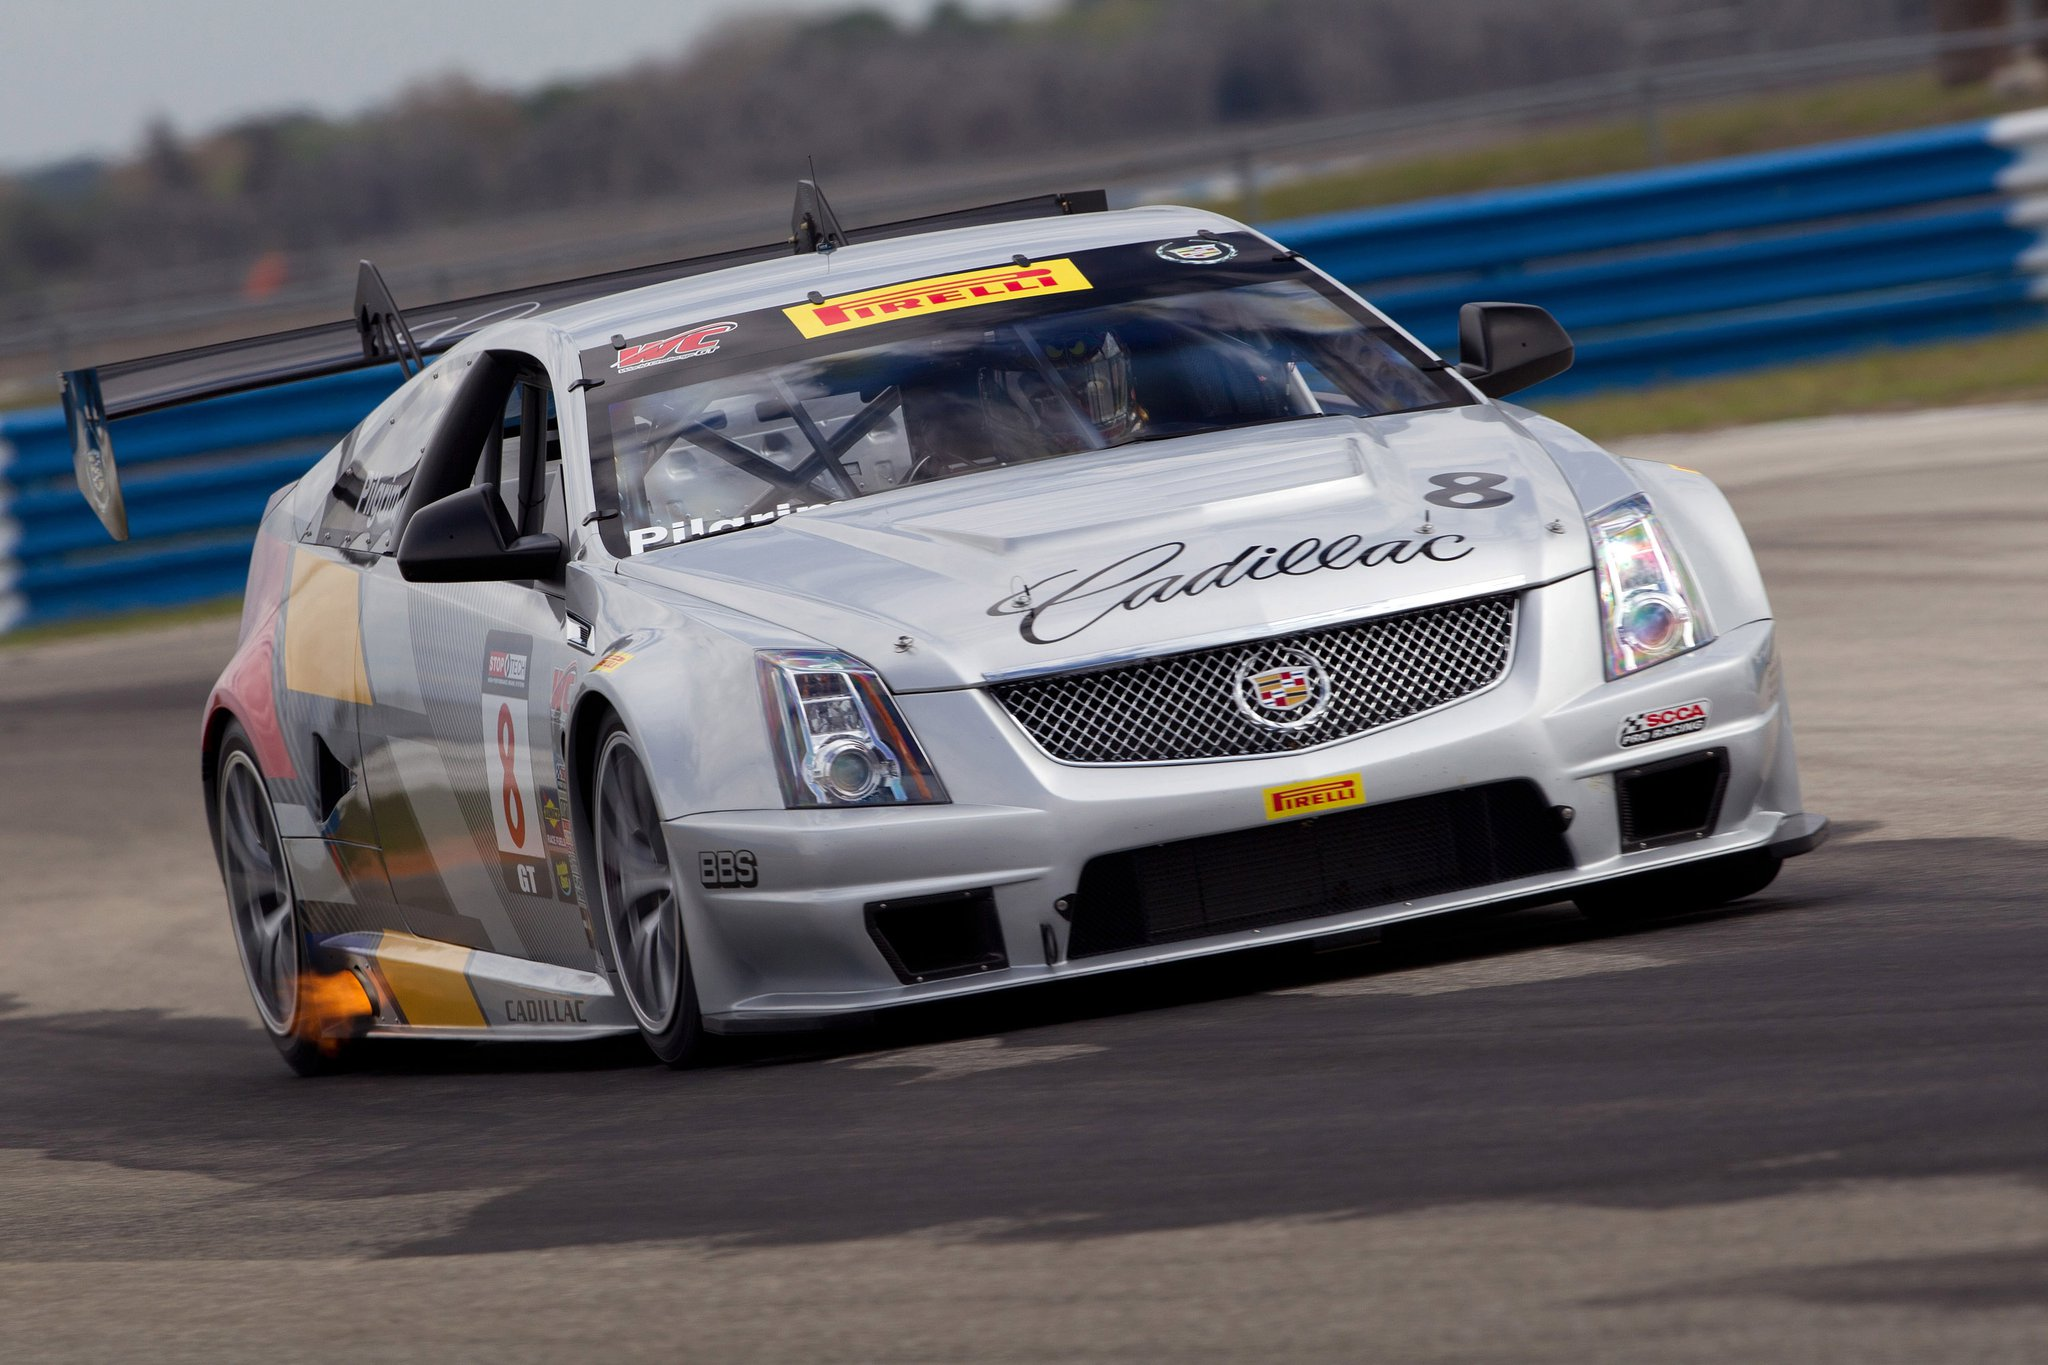 cadillac cts v coupe race car gears up for 2011 season. Black Bedroom Furniture Sets. Home Design Ideas